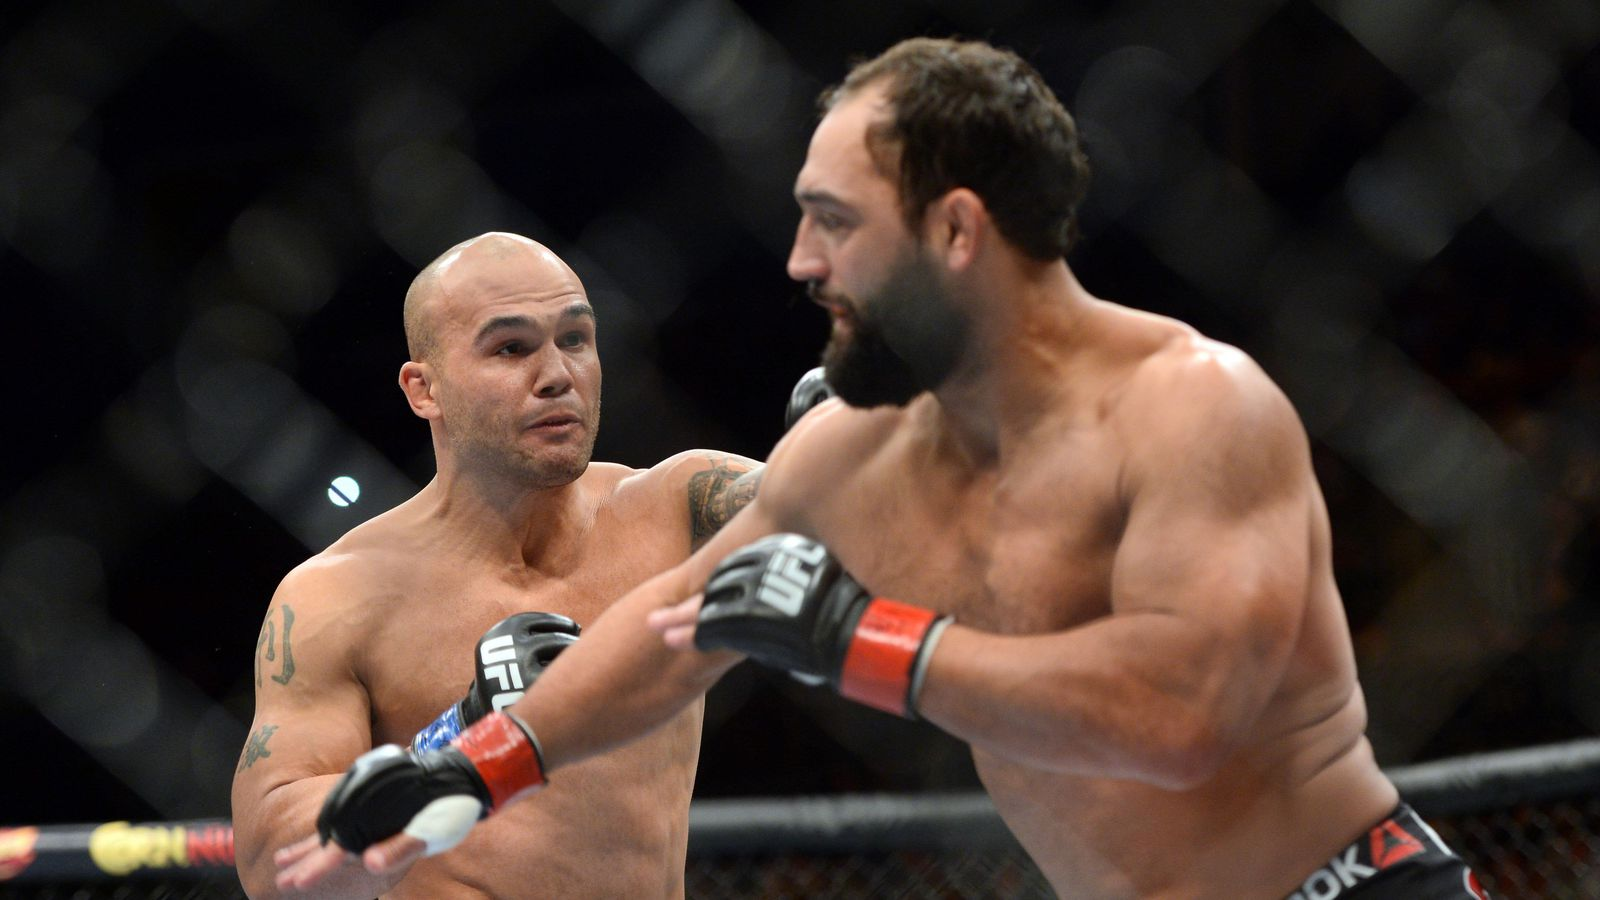 UFC 181: Hendricks vs. Lawler results - Fights to make for ...